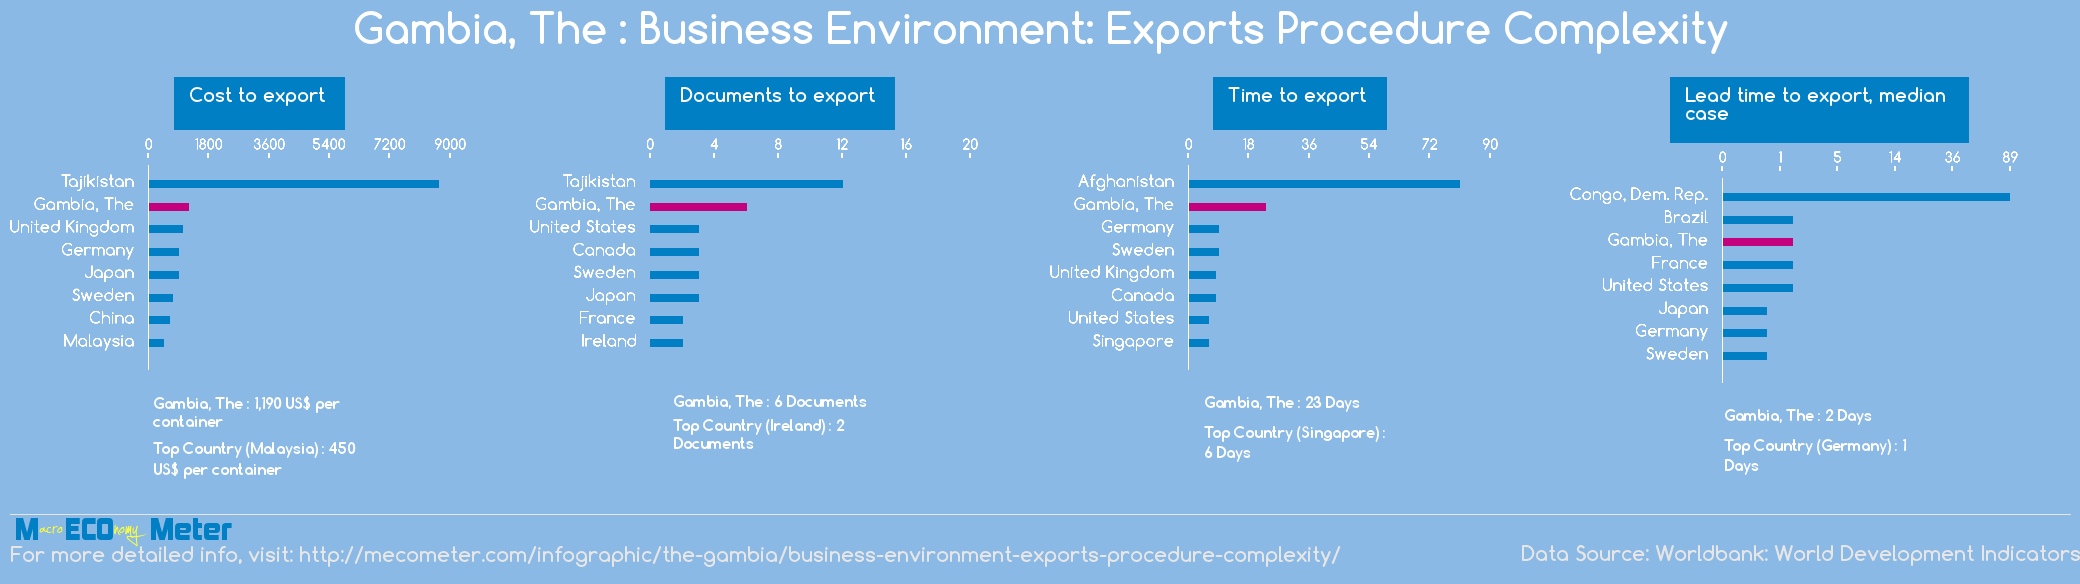 Gambia, The : Business Environment: Exports Procedure Complexity